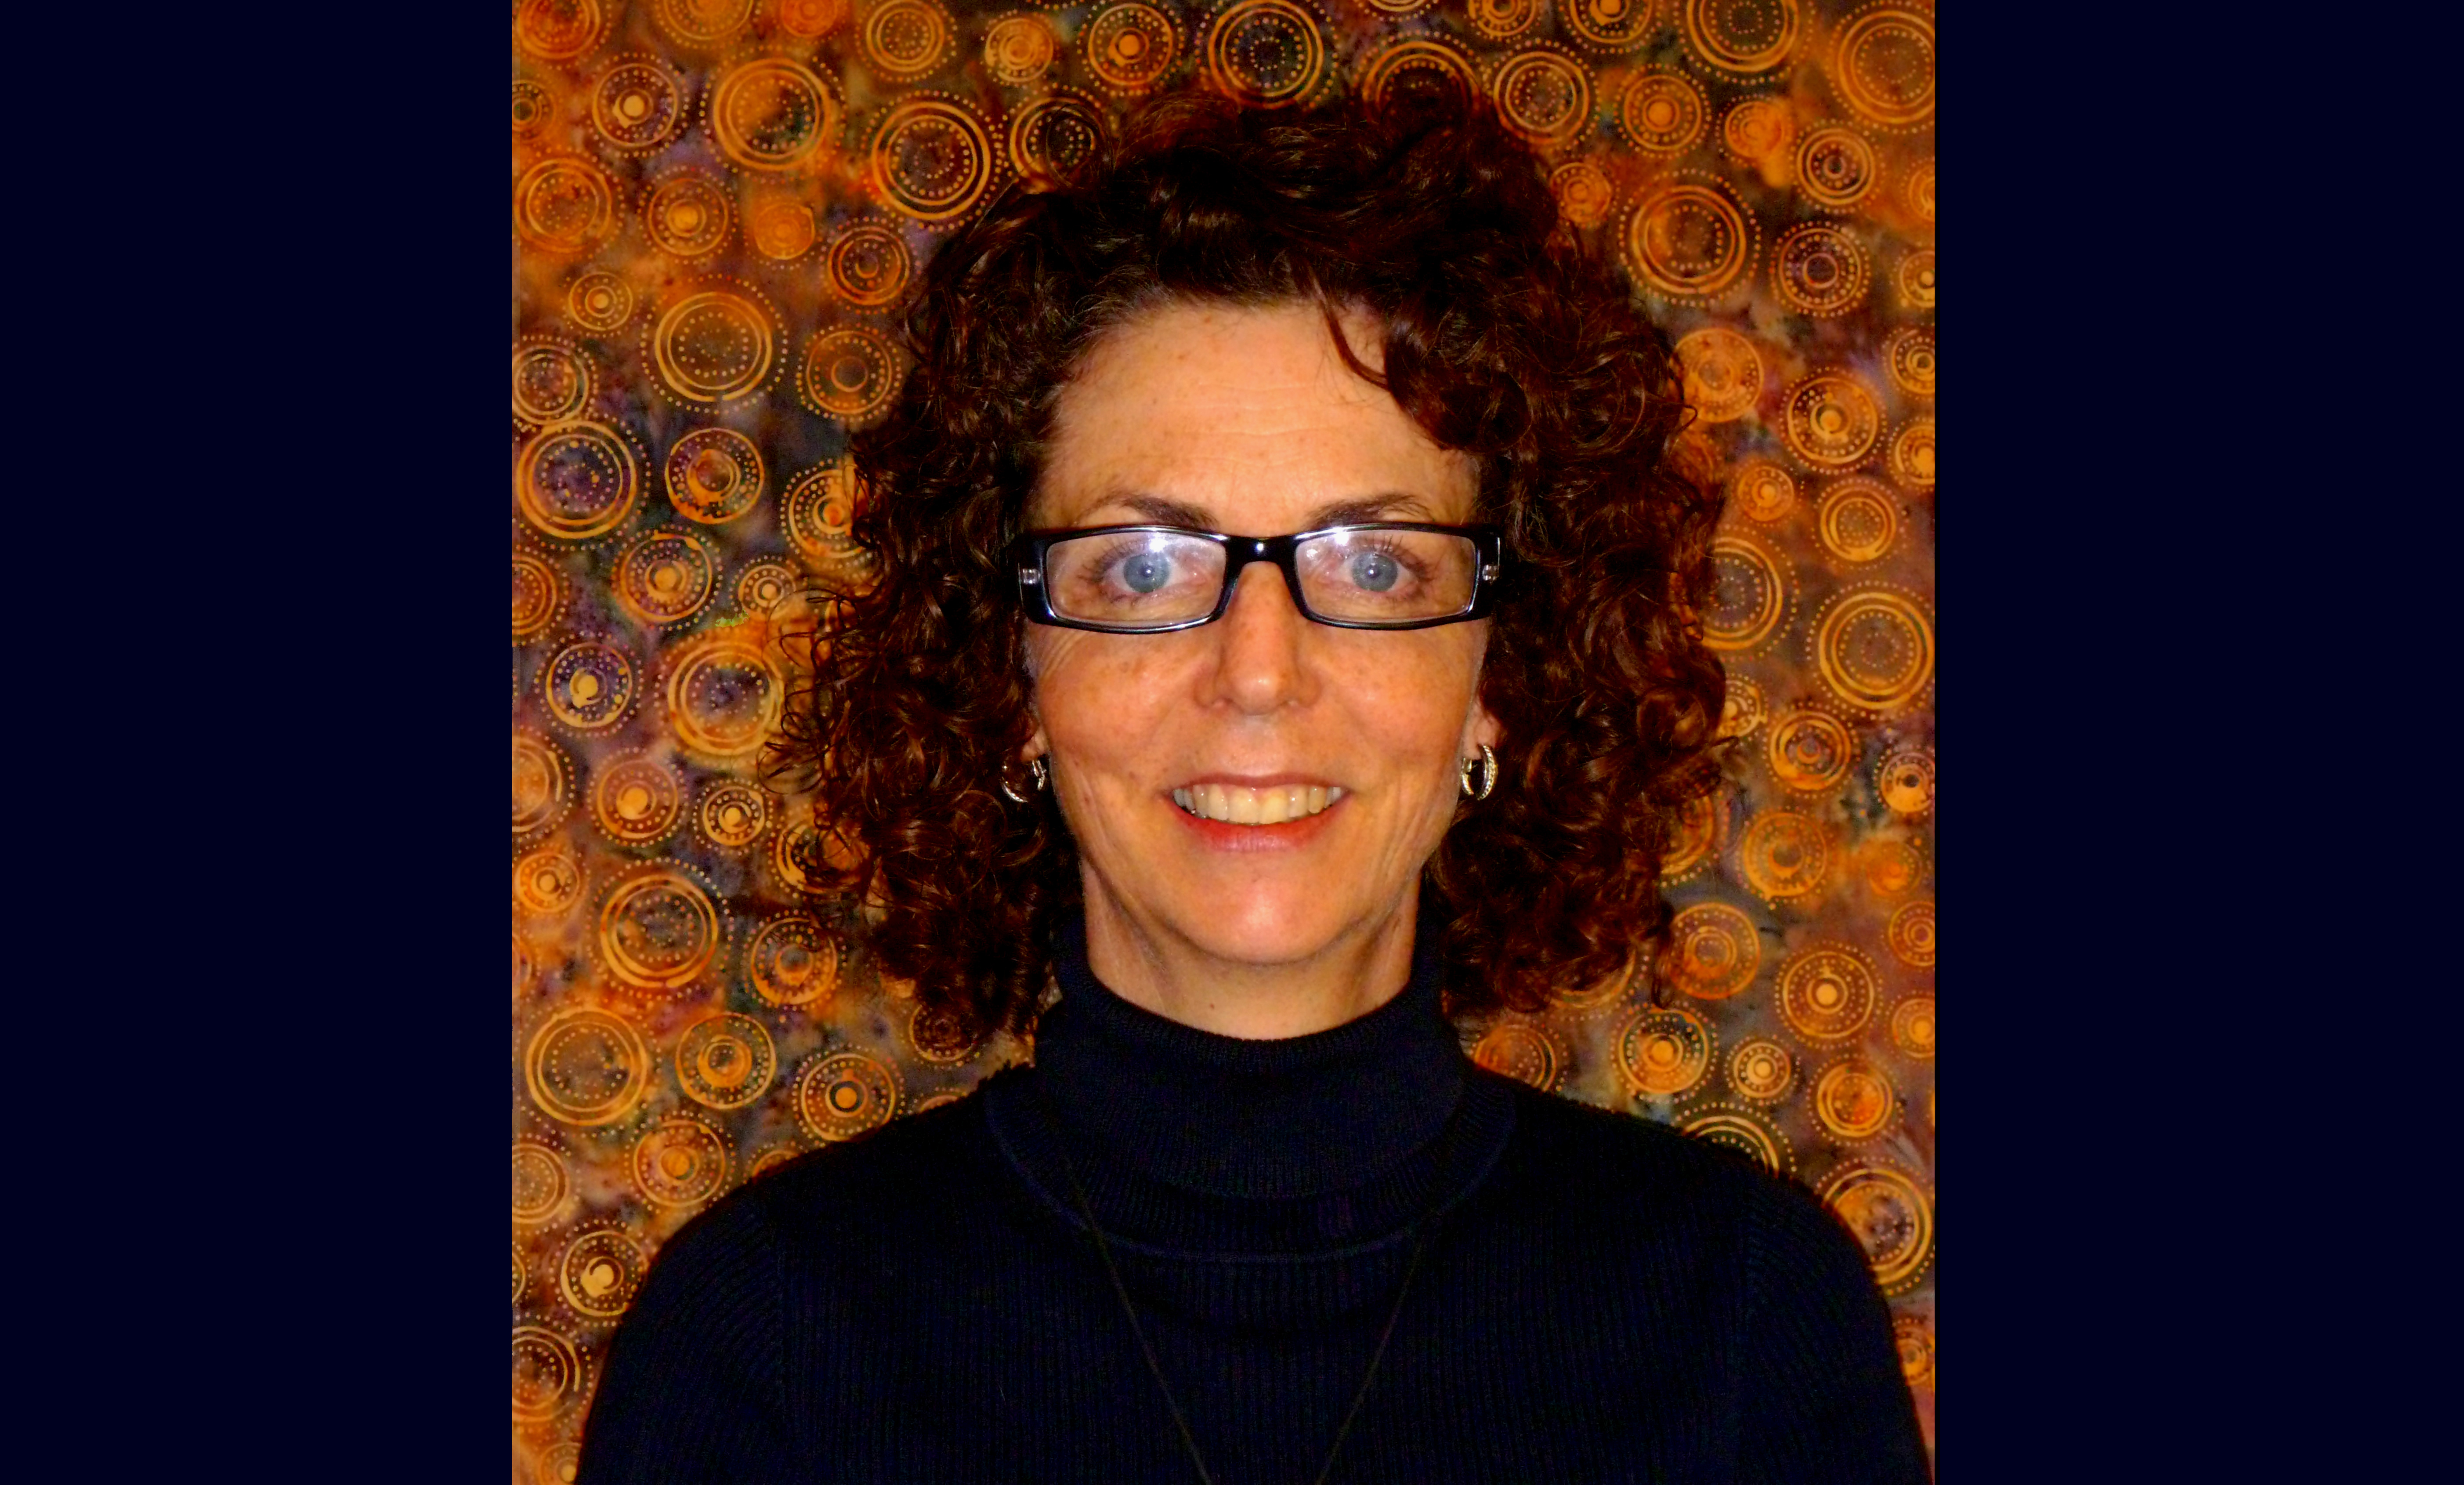 Joanne smiles at the camera in front of a gold-swirly pattern. She wears glasses and a dark blue shirt and has curly dark brown hair.